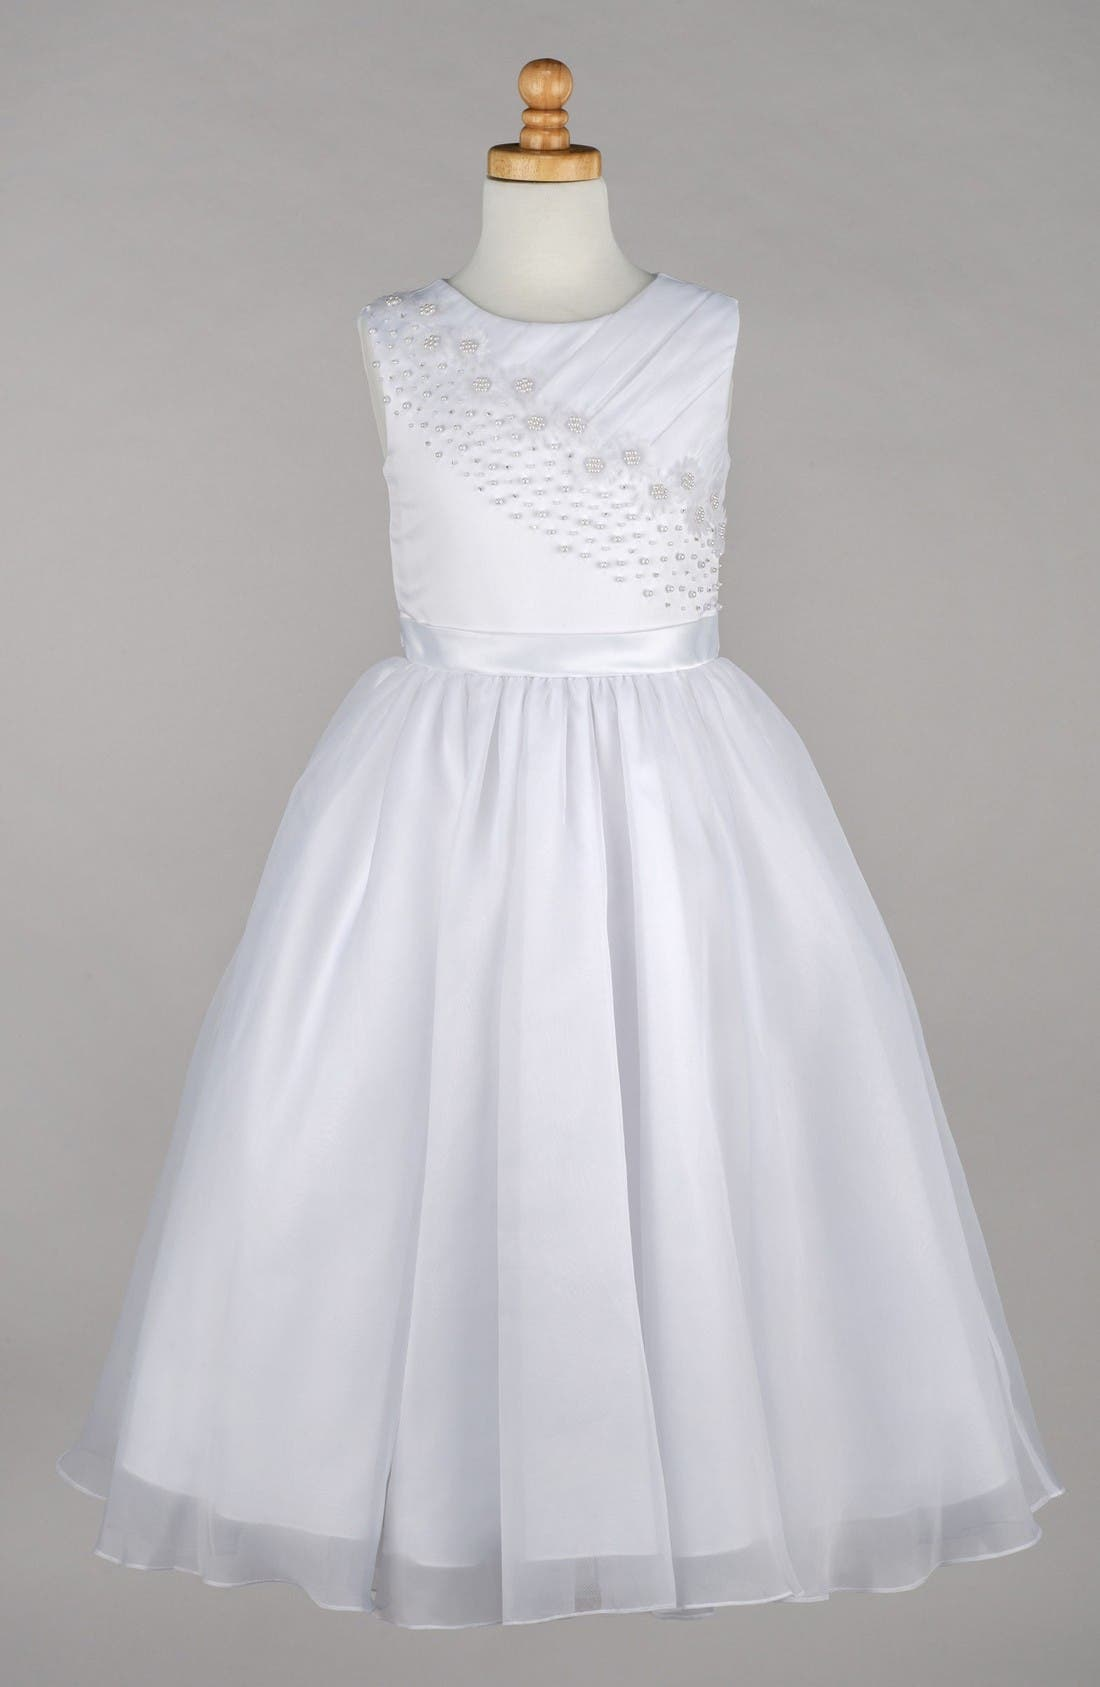 Alternate Image 1 Selected - Lauren Marie Beaded Daisy Bodice First Communion Dress (Little Girls & Big Girls)